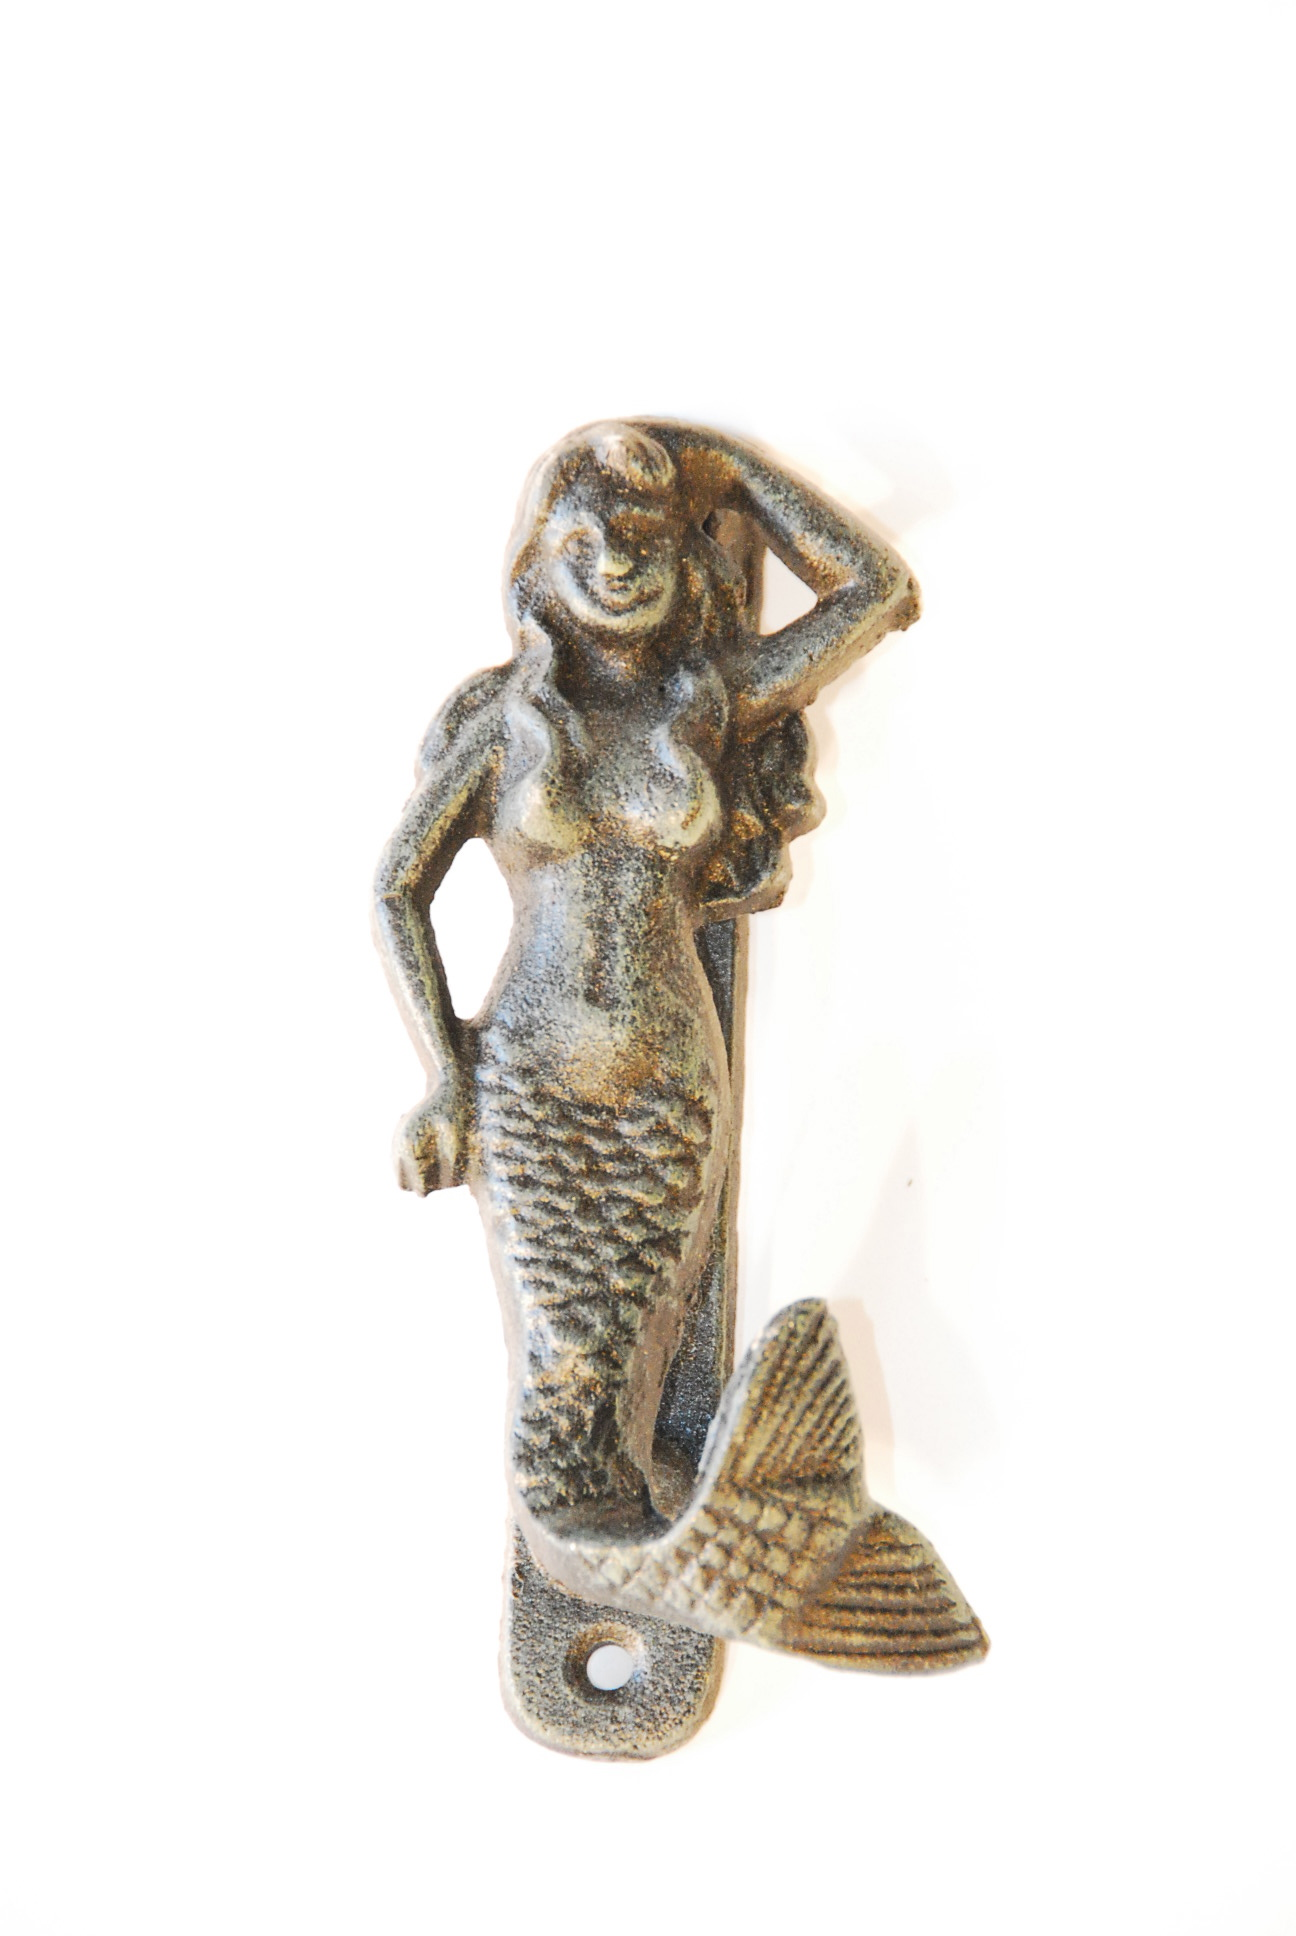 Mermaid door knocker 6 long cast iron 6 in a box macgregor imports ltd - Mermaid door knocker ...